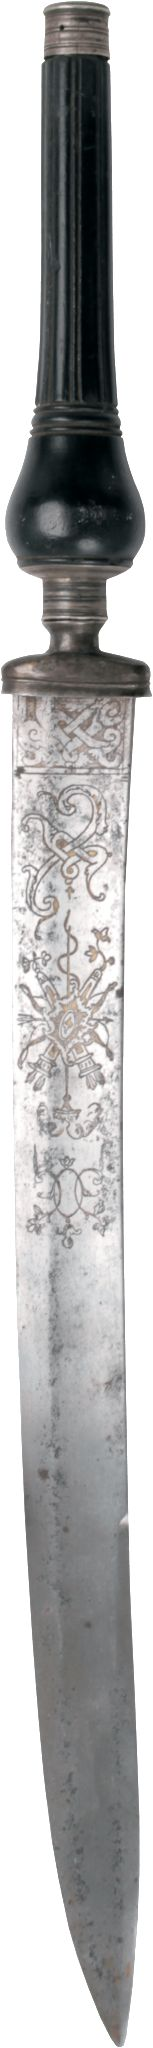 [#Claudio] FRENCH SILVER MOUNTED REVERSIBLE PLUG BAYONET C.1760  Mounted in silver with an ebony grip. It lacks any silver marks reinforcing a bespoke order. The blade is decorated with classic military trophies, That decoration is evidently unique on surviving examples and suggests an owner with a military background.